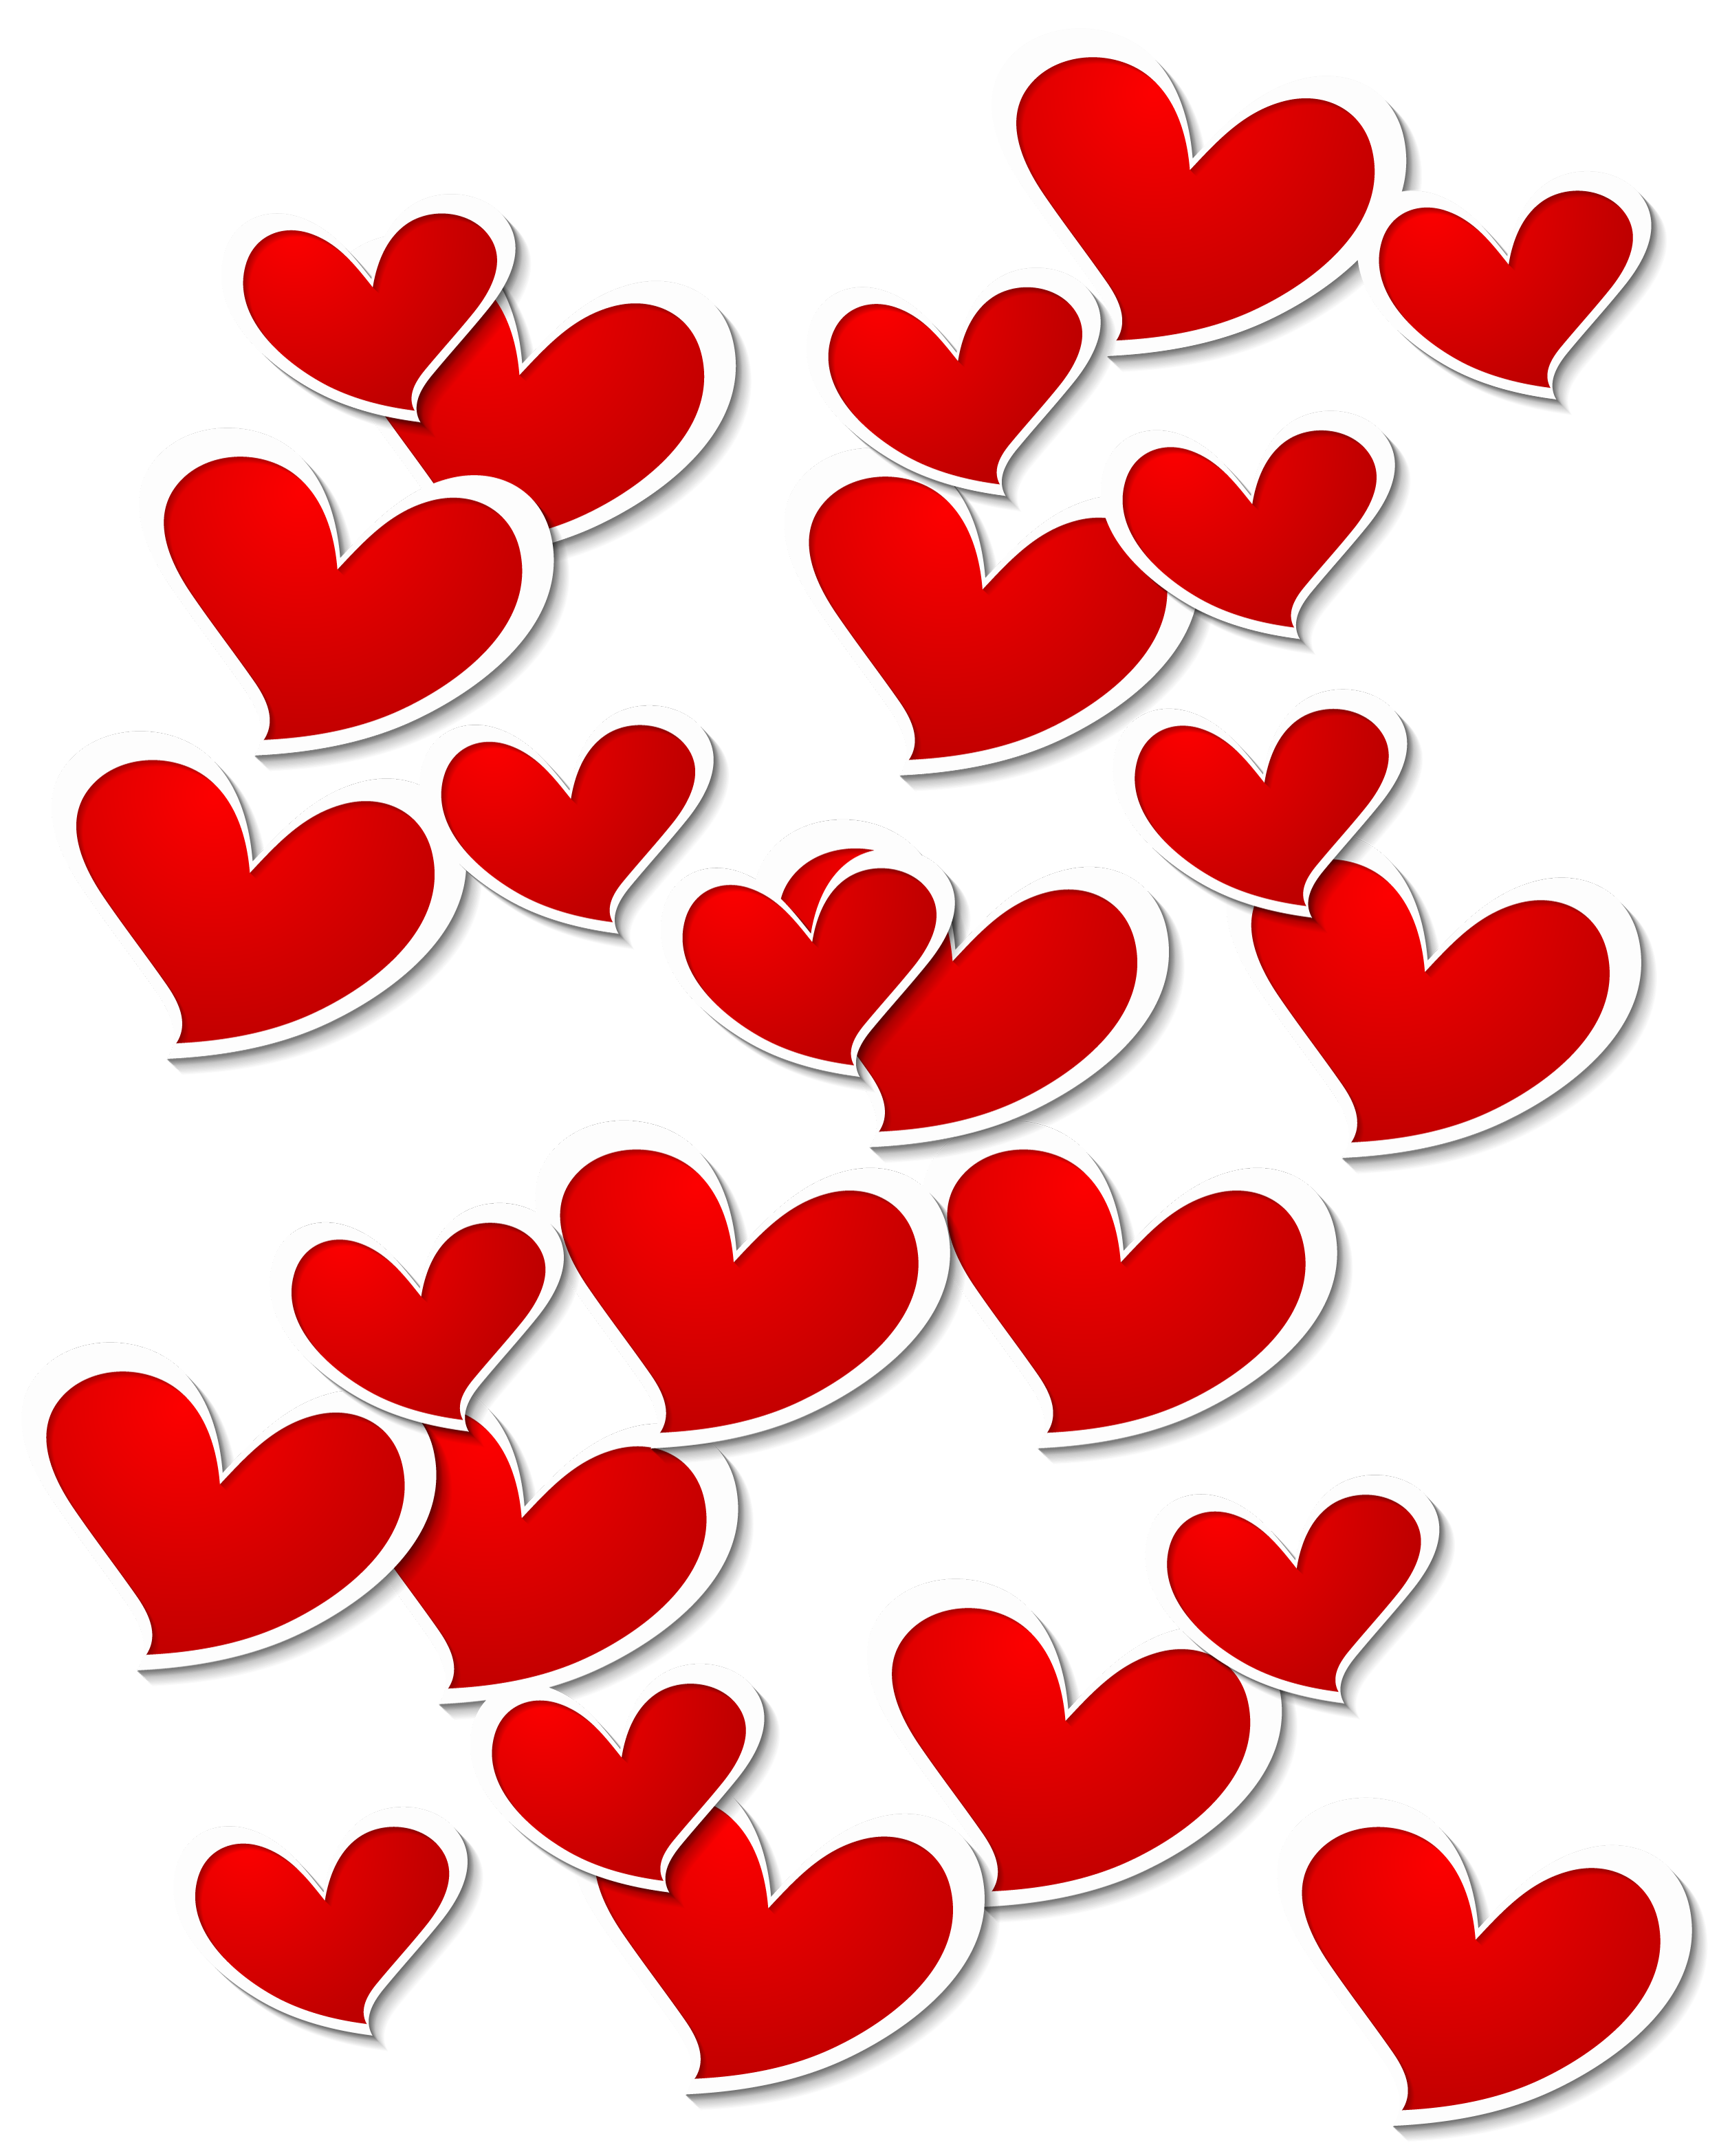 Transparent red white hearts. Clipart heart decoration